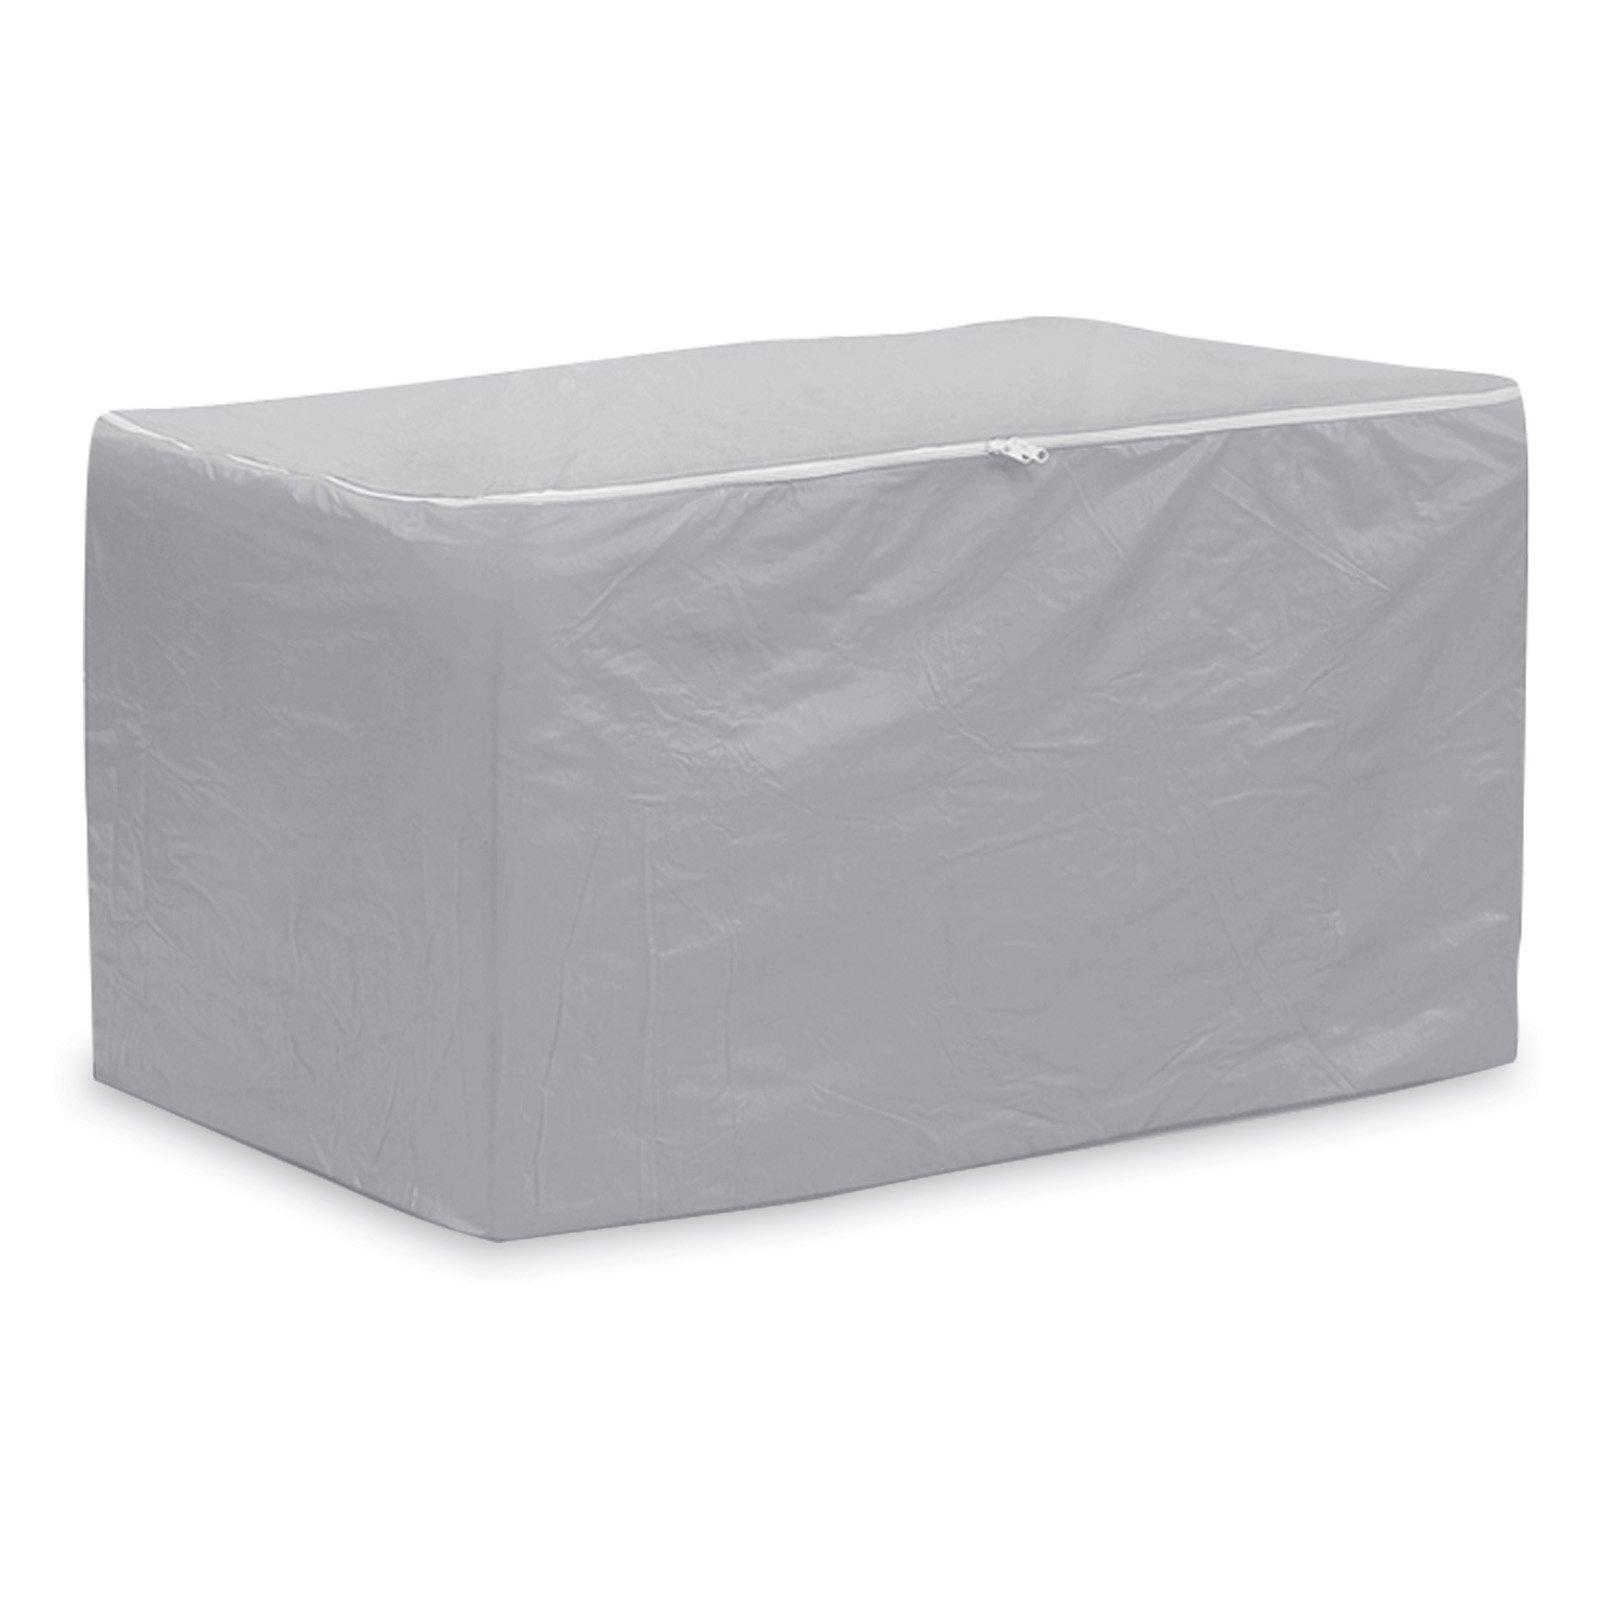 Waterproof Storage Bag for Chaise Lounge Cushions  sc 1 st  Walmart : waterproof chaise lounge cushions - Sectionals, Sofas & Couches